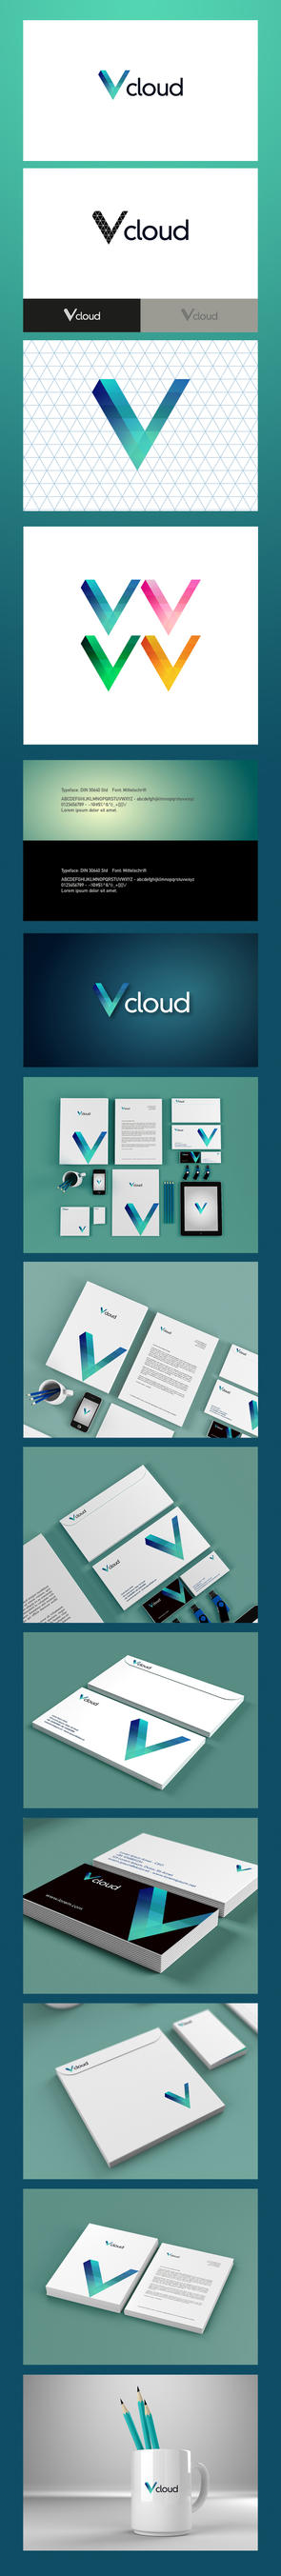 Vcloud logo and stuffs v2 by SDMD